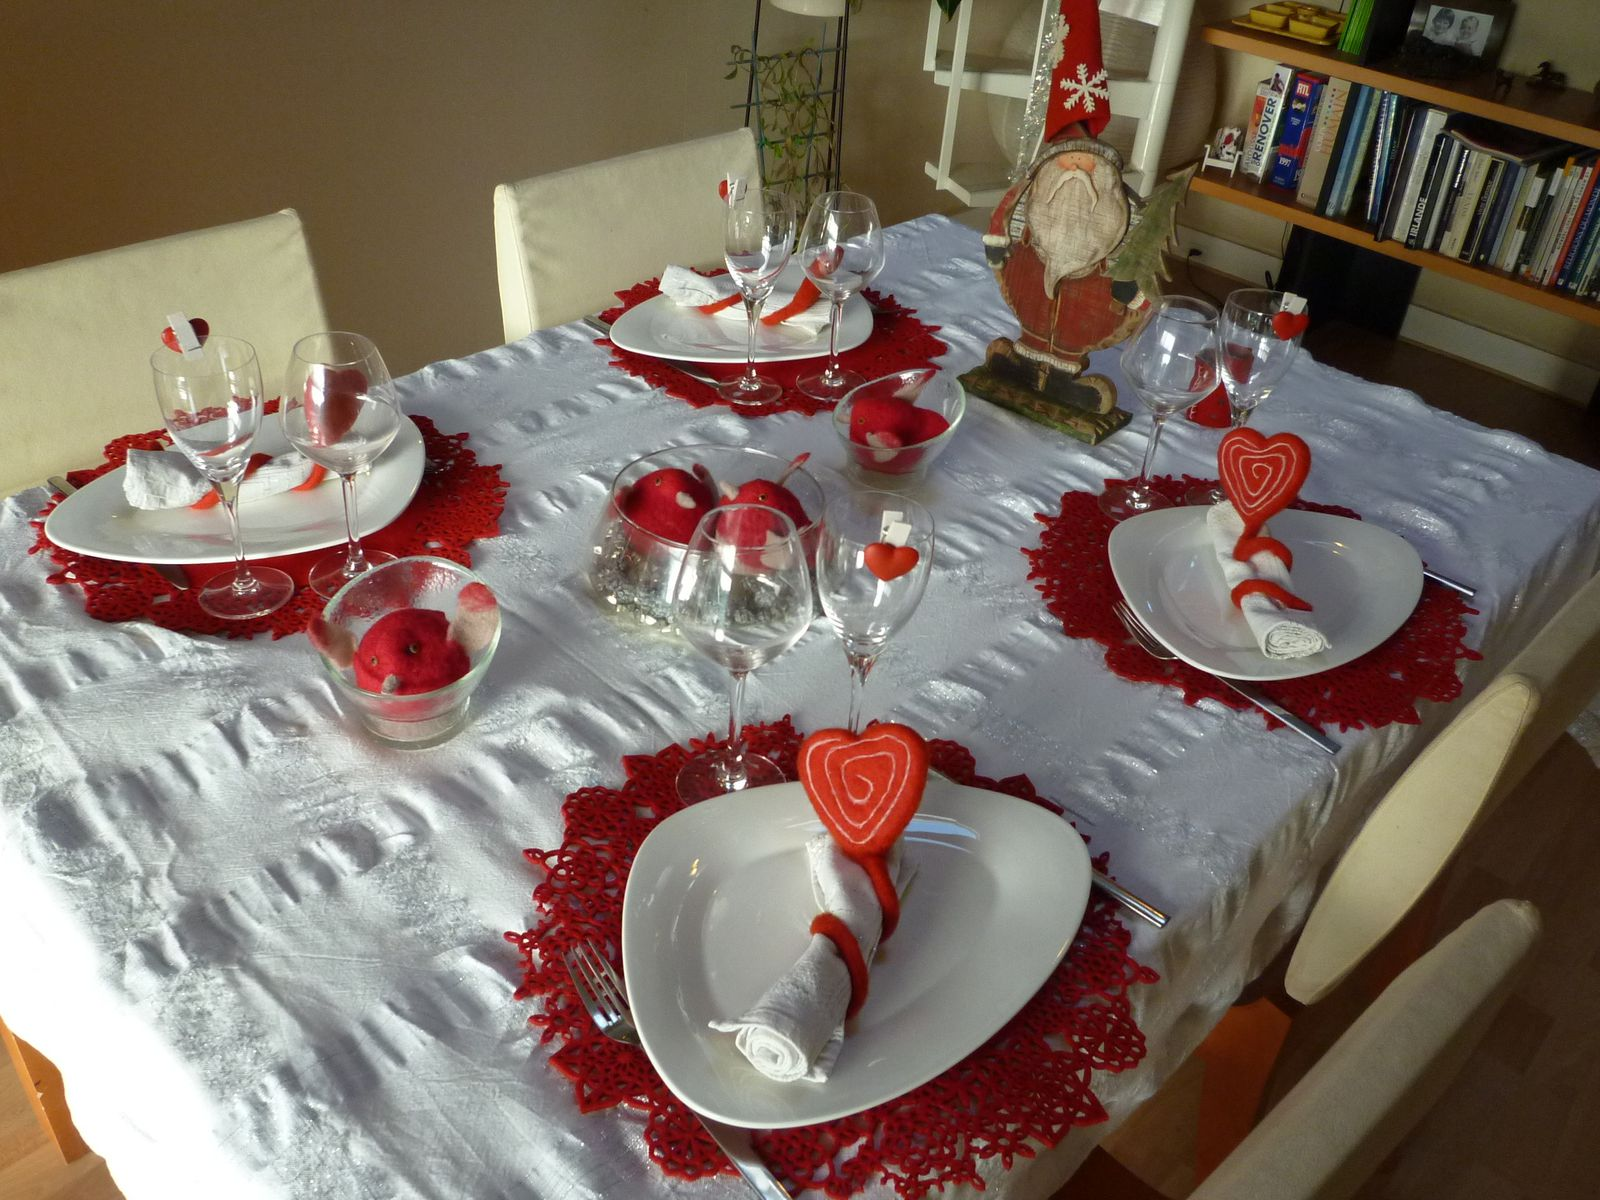 Comment decorer la table de cuisine for Decoration de la table